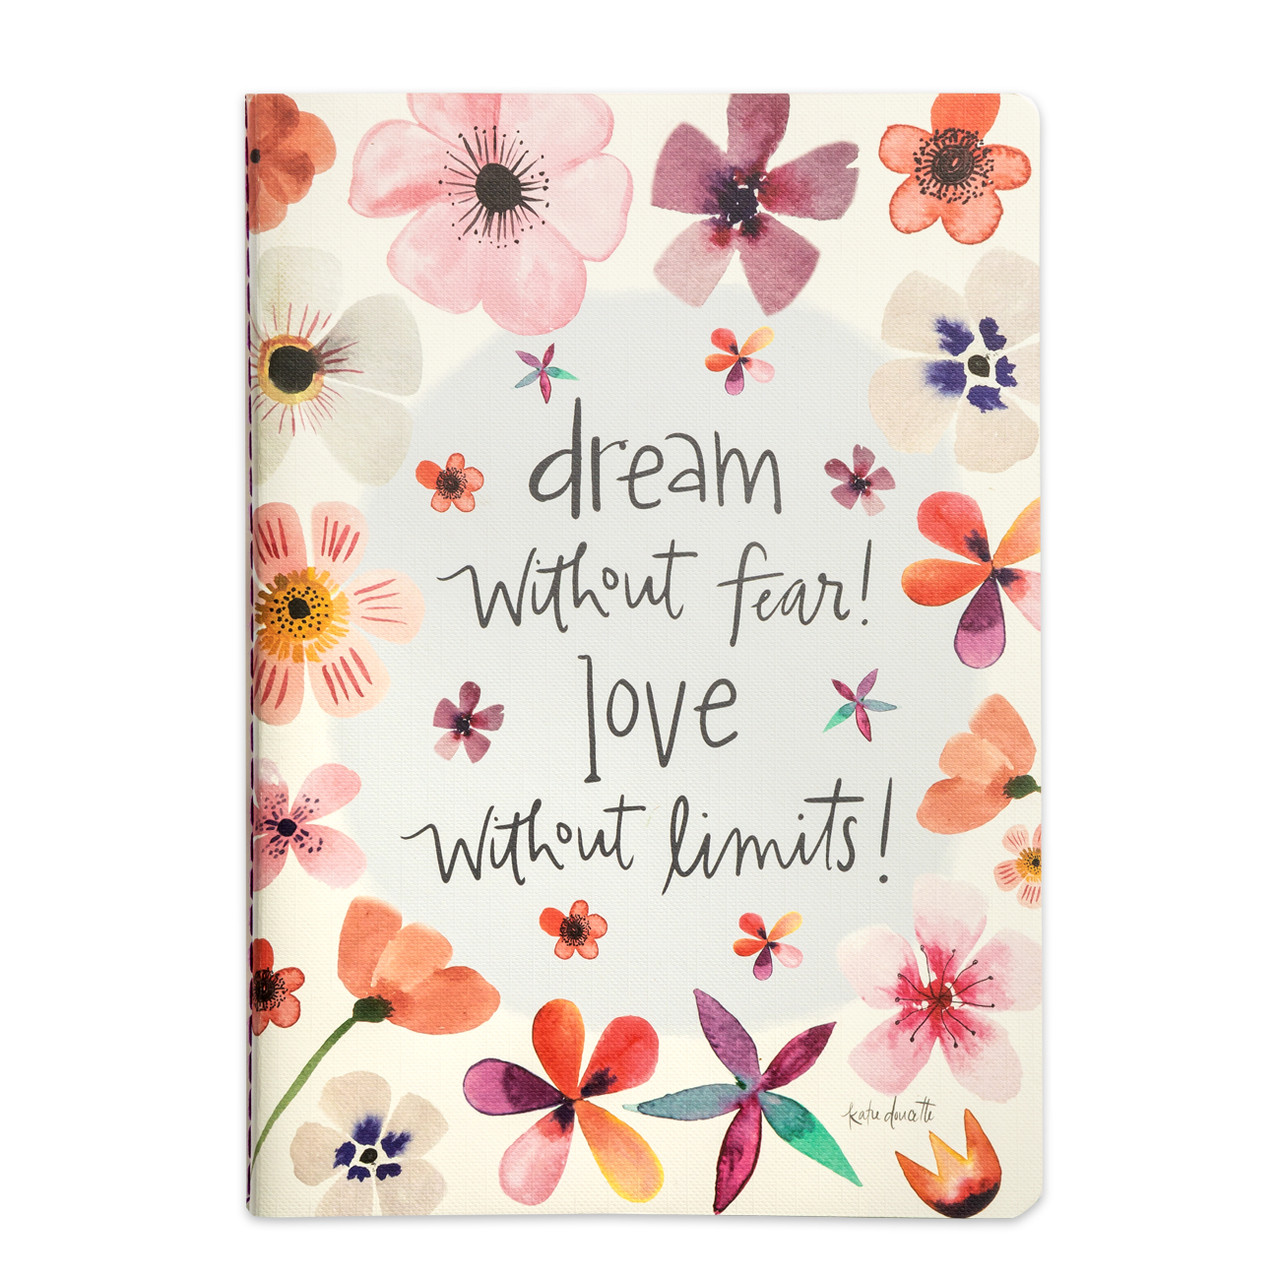 Dream love without fear notebook journal gift inspirational